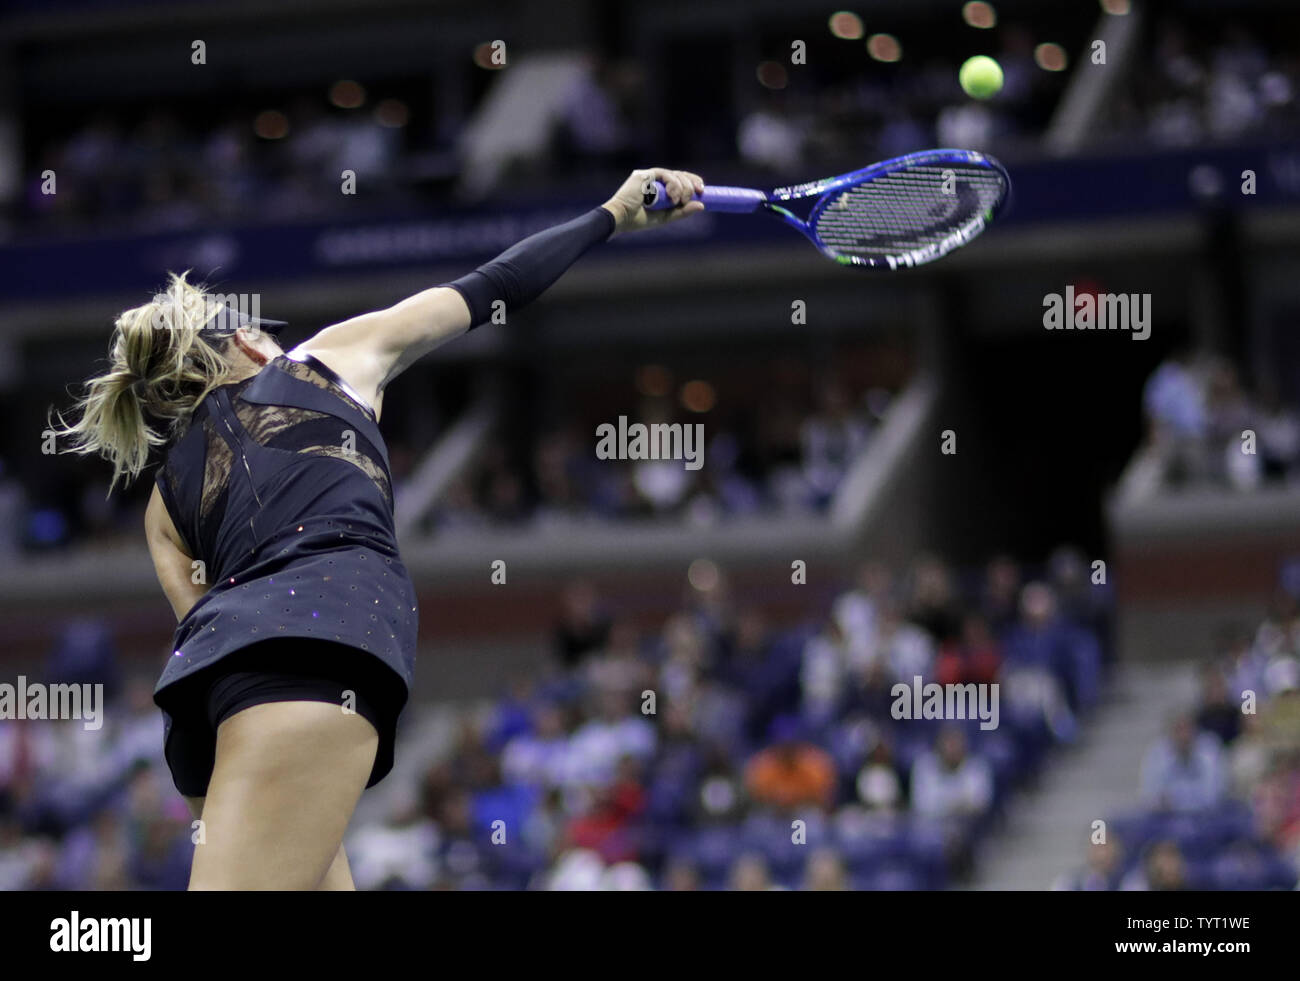 Maria Sharapova Of Russia Serves To Sofia Kenin In Their 3rd Round Match On Day 5